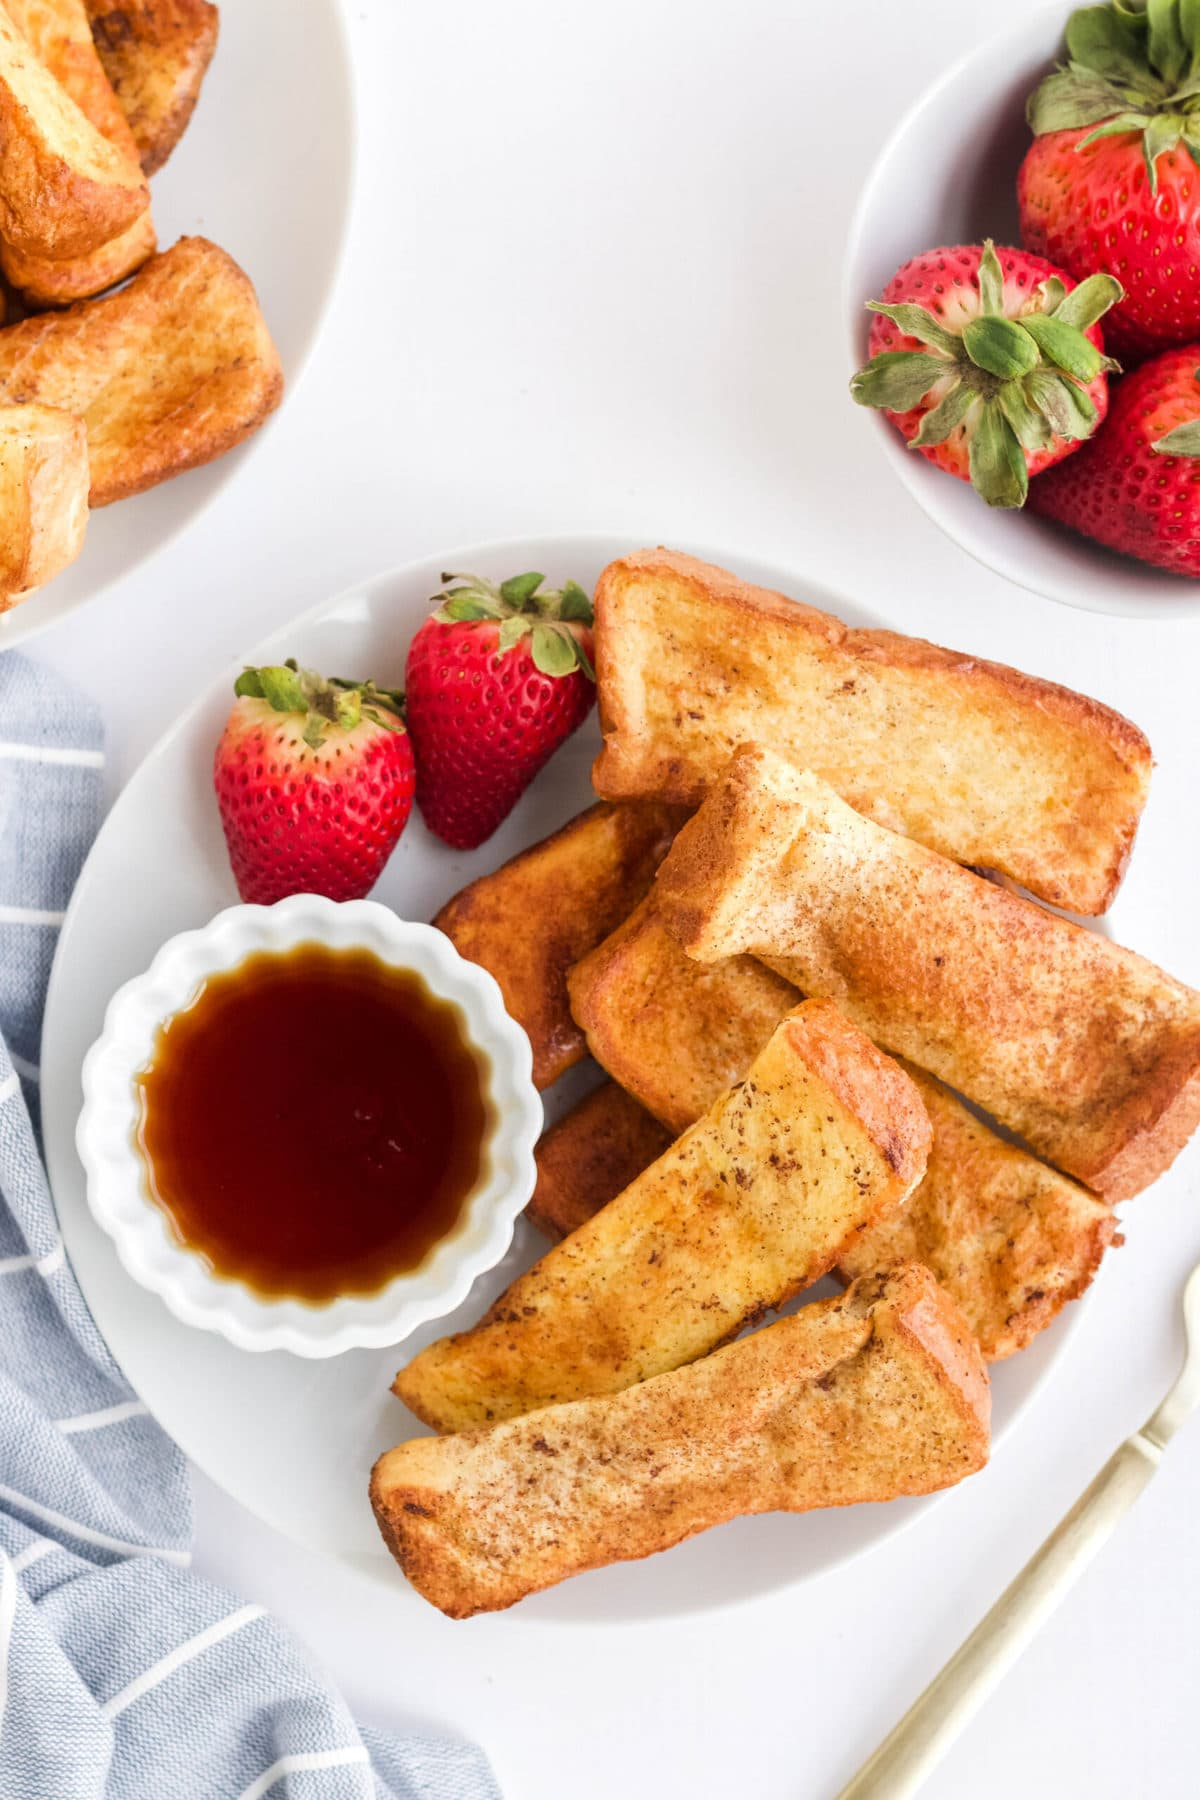 sticks of french on white plate, strawberries dish of syrup